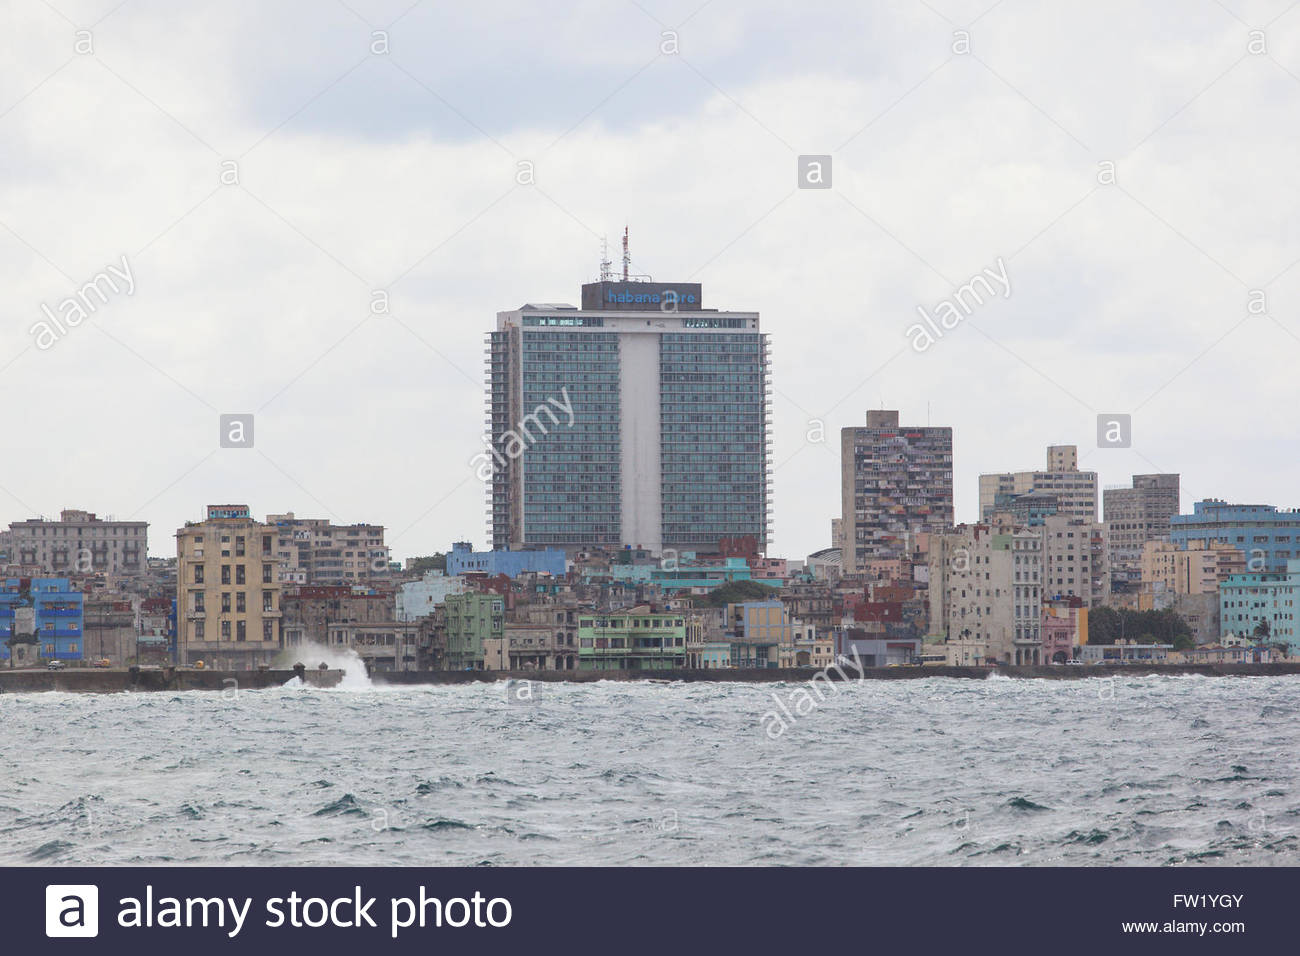 Tryp Habana Libre Cuba Tryp Hotel Stock Photos And Tryp Hotel Stock Images Alamy